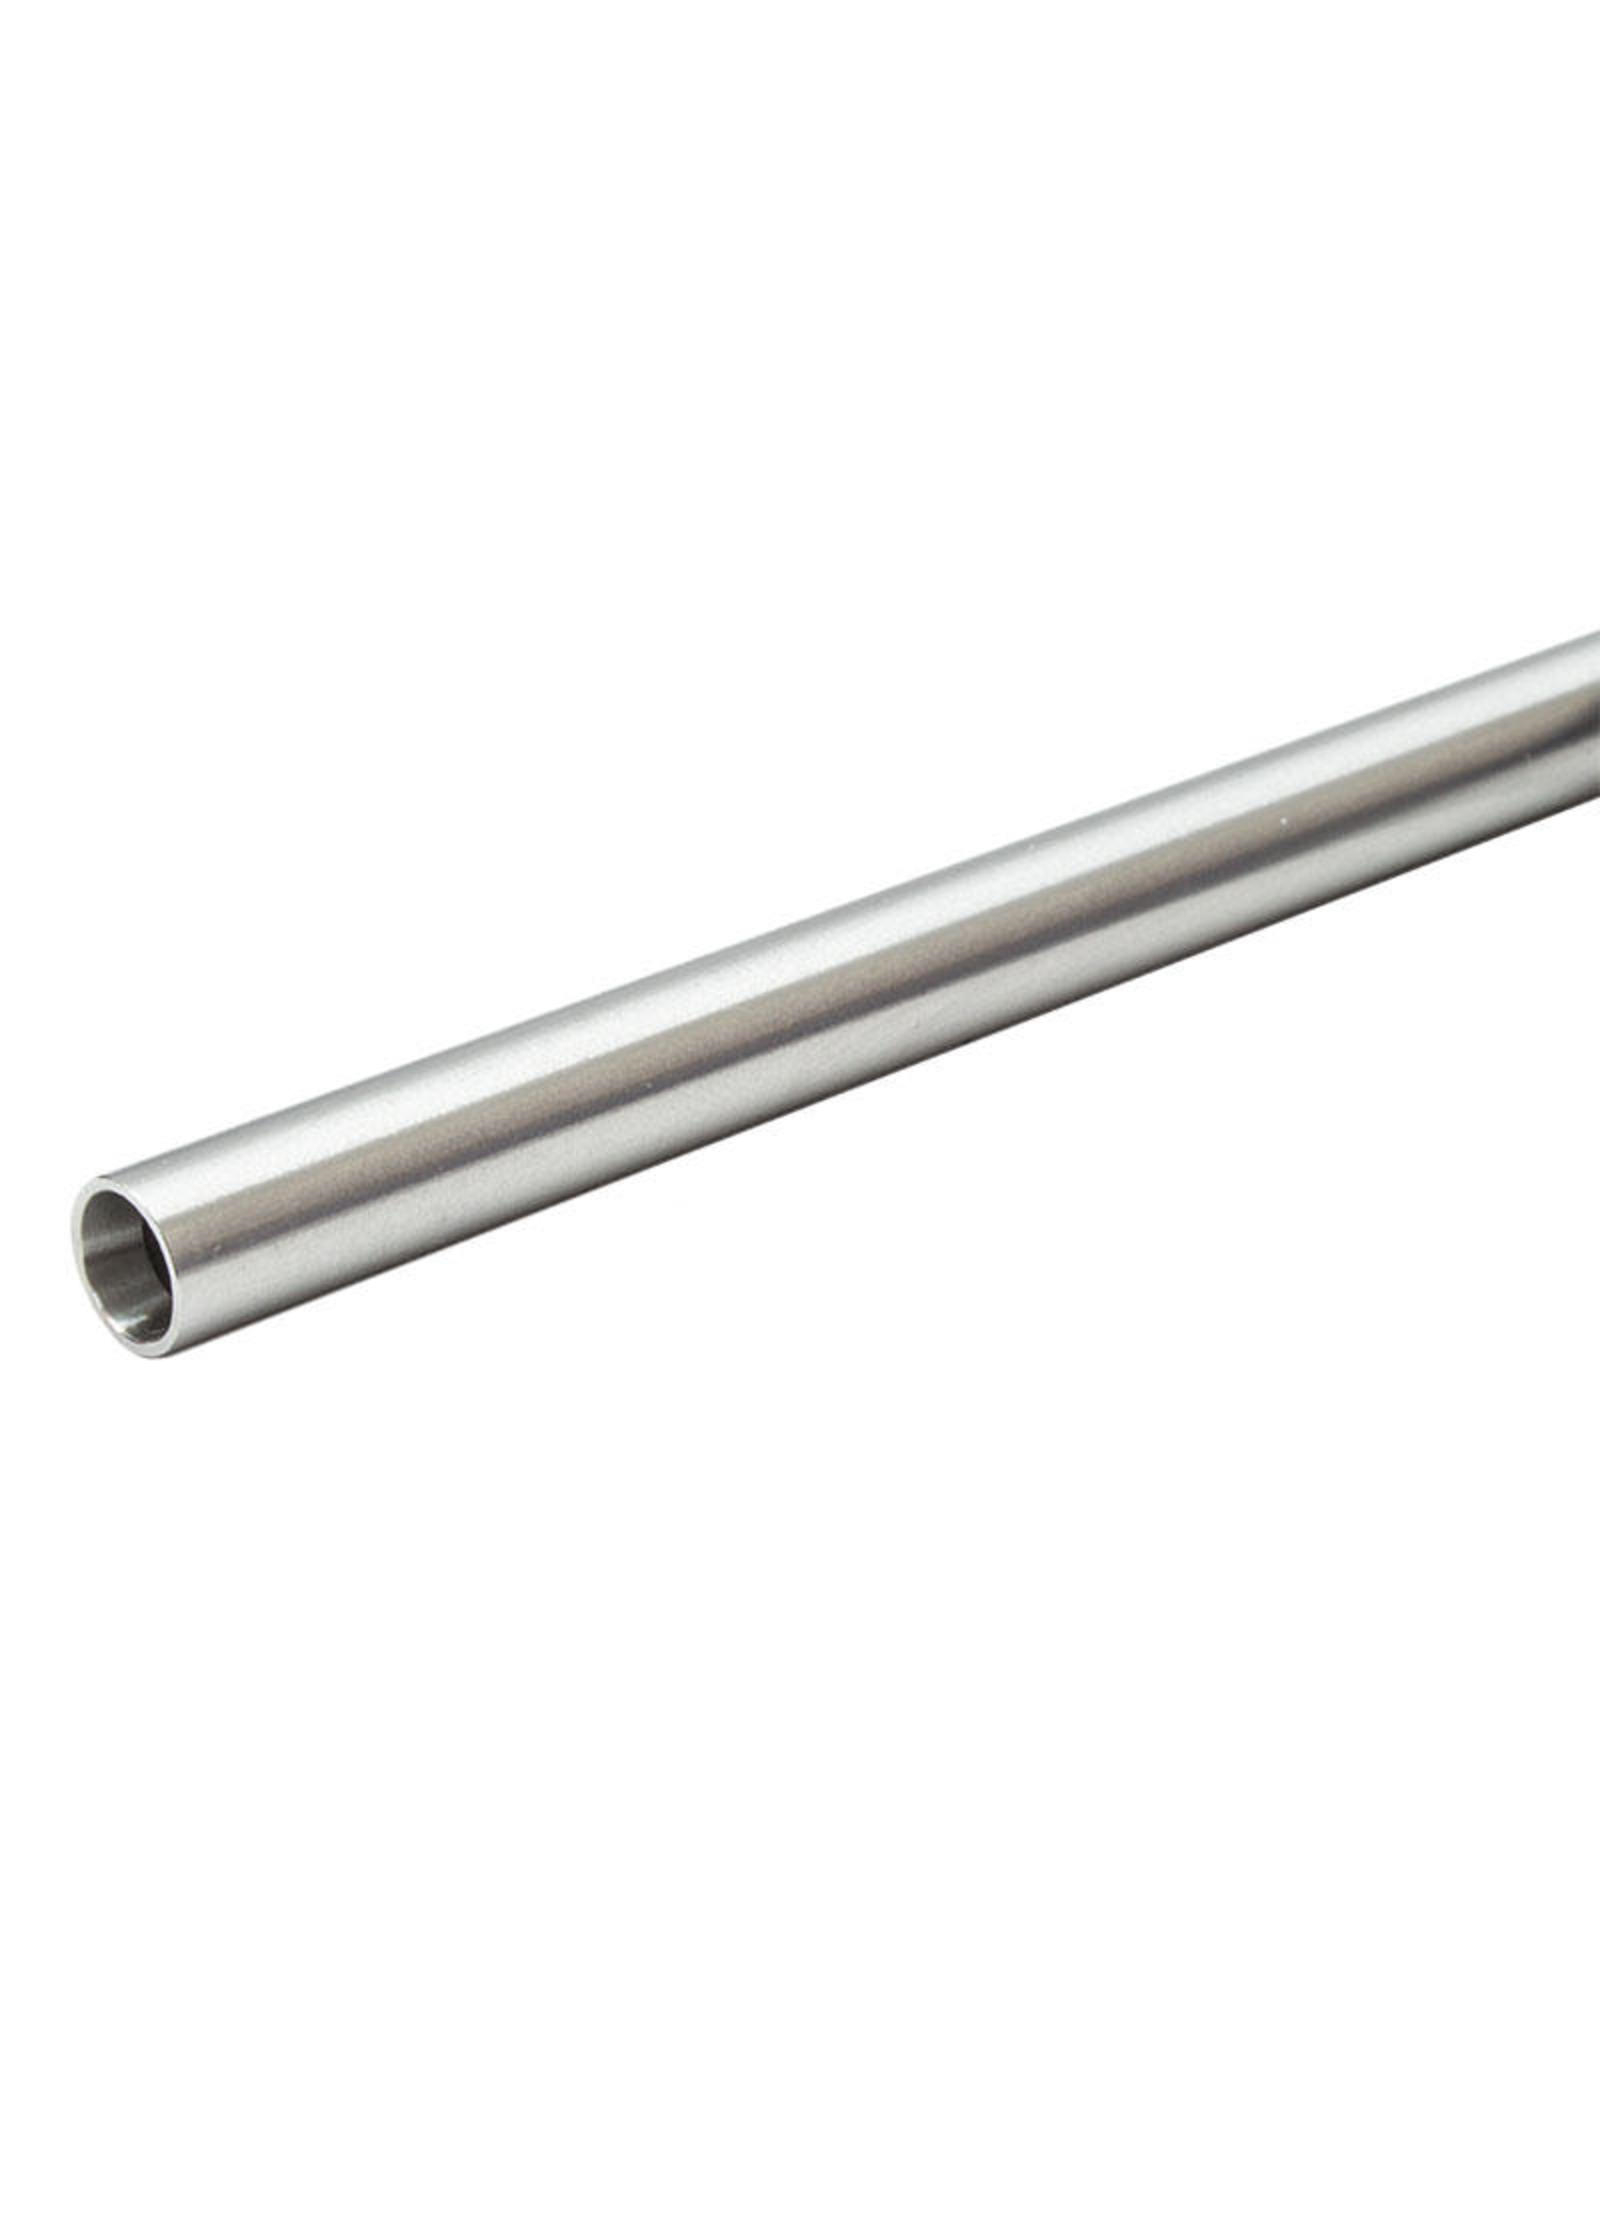 Nuprol Tightbore Stainless Steel Barrel